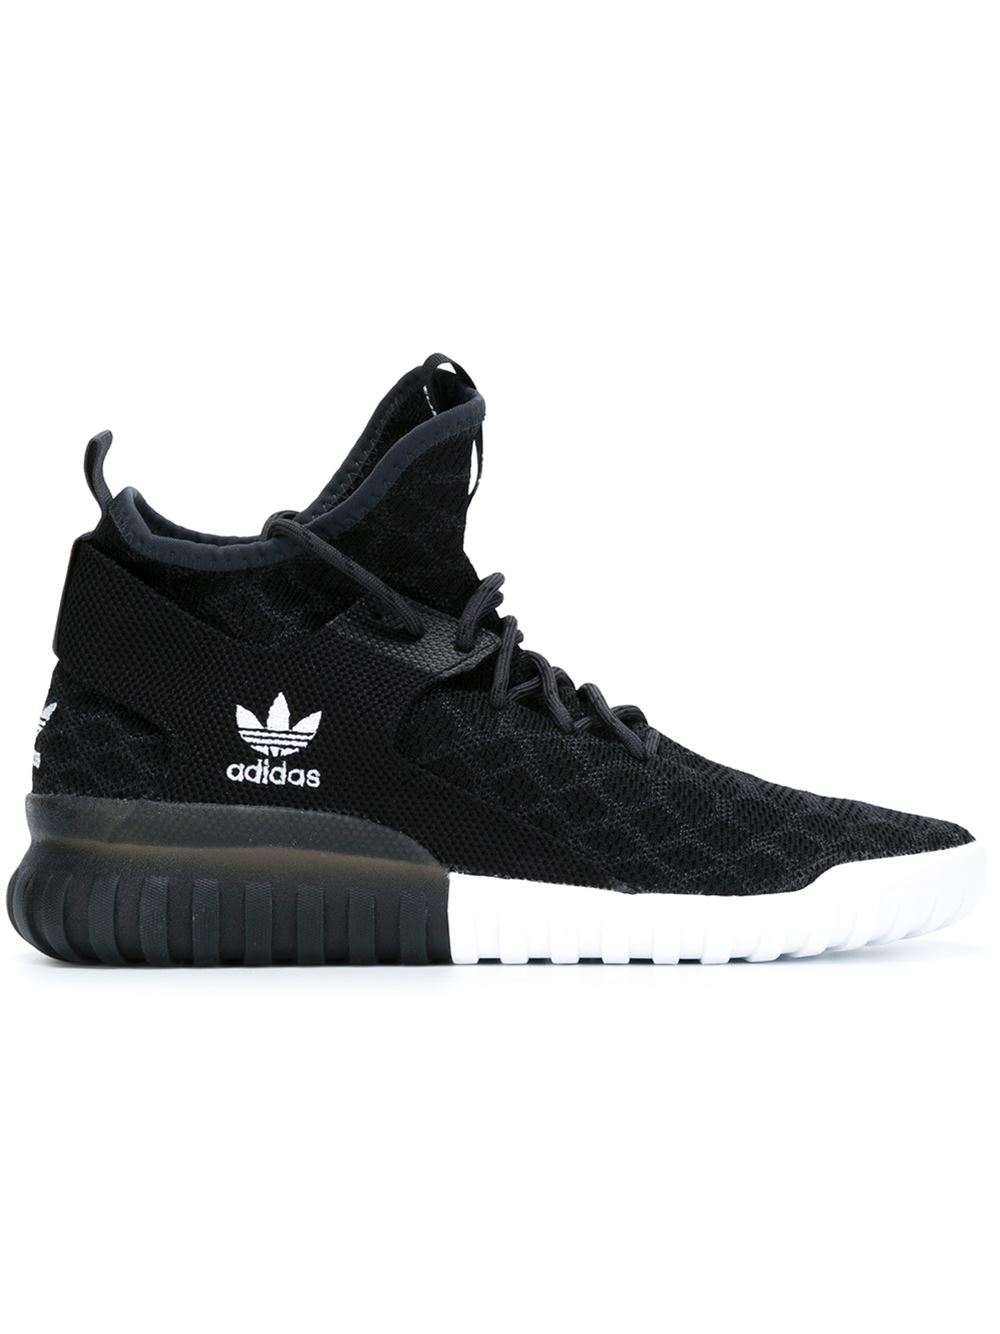 adidas originals 39 tubular x primeknit 39 sneakers in black for men lyst. Black Bedroom Furniture Sets. Home Design Ideas